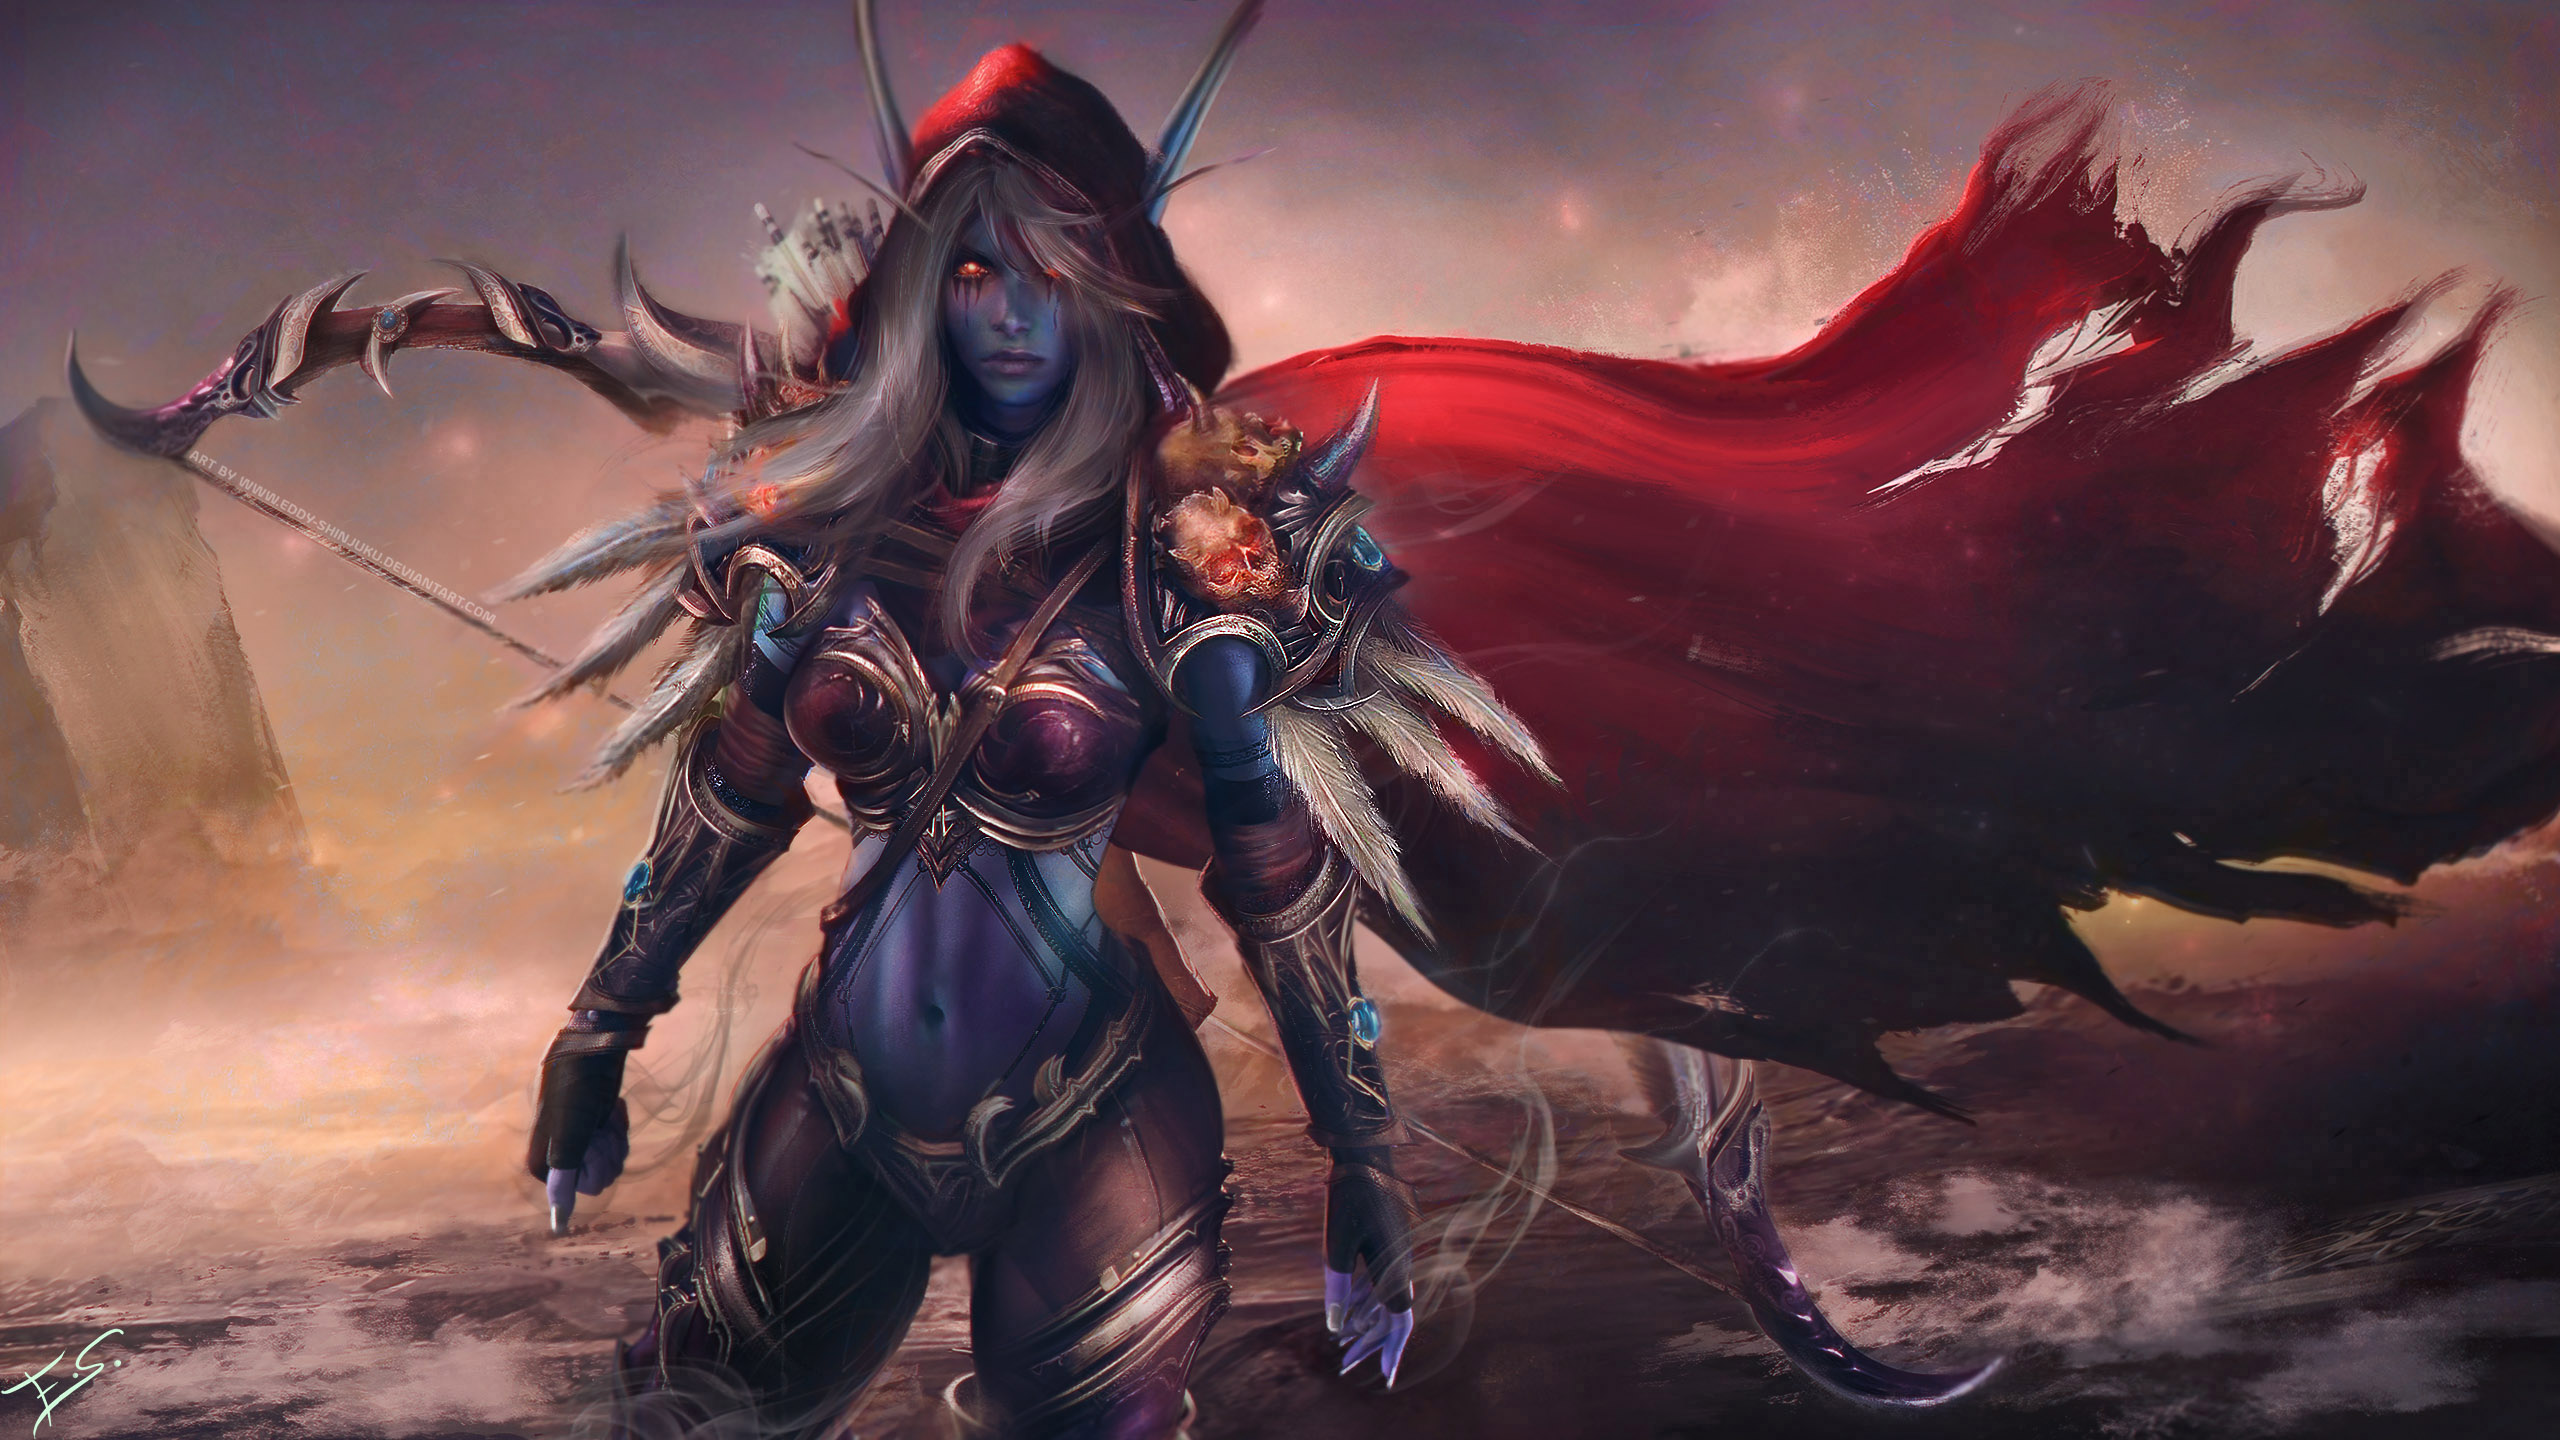 Sylvanas Windrunner Warcraft Wallpaper Art By Eddy Shinjuku On